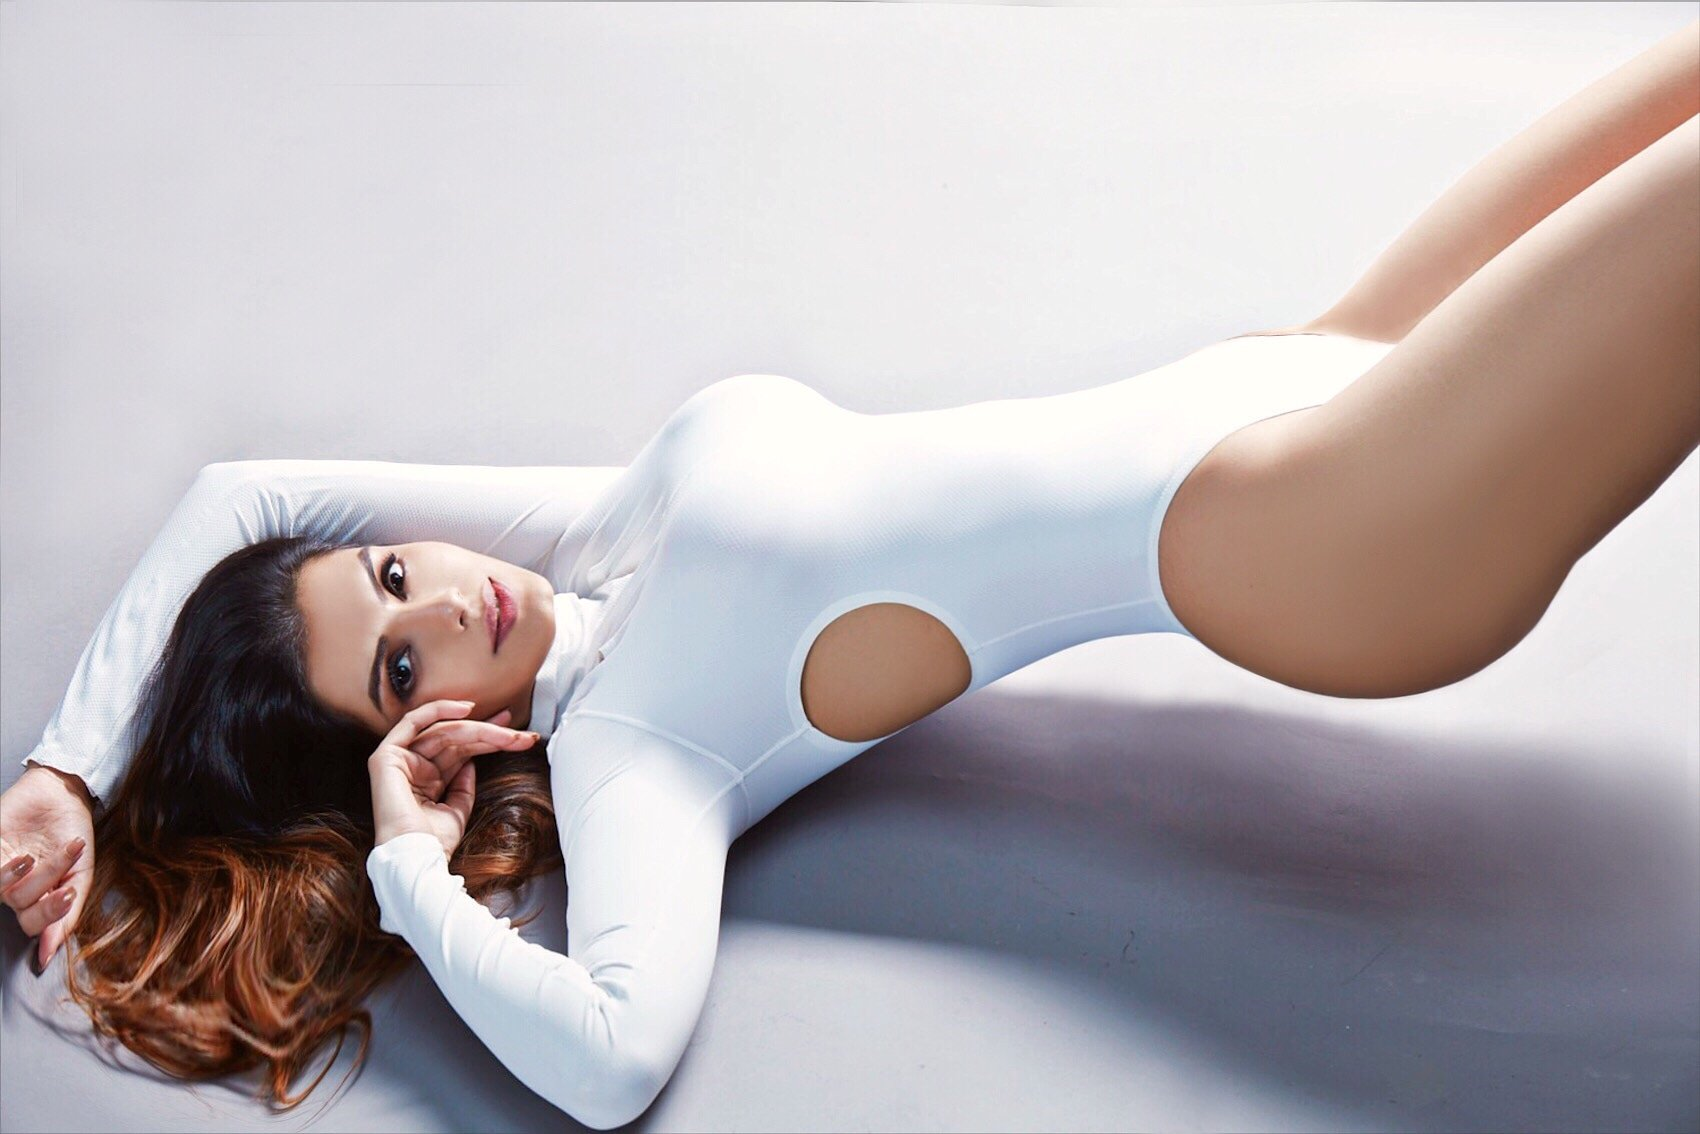 White is pure and simple and matches with everything!!! #photography #photoshoot #leotard #white #pure #style #styleblogger #beautyshot #beautyblogger #sexy #glam #glamorous #confidence #BollywoodActress https://t.co/3K1vjyi81b